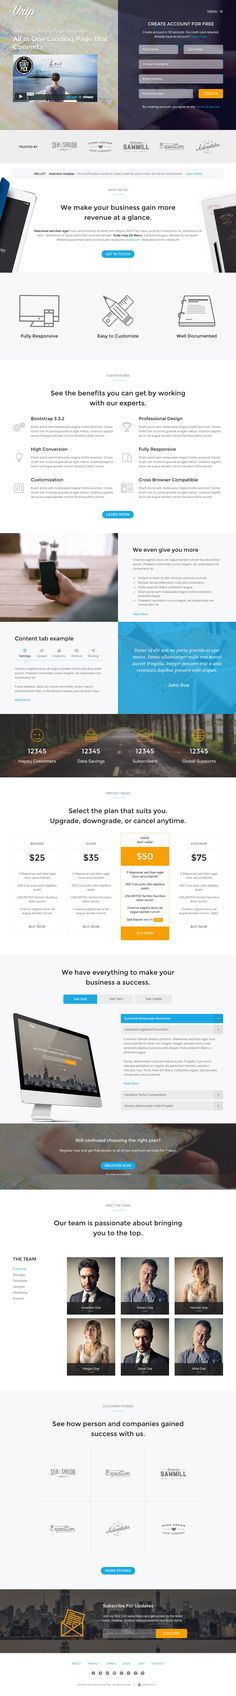 'Urip' is a smart landing page HTML template focused on lead generation. The One Page template, built on Bootstrap, comes with 4 layout options: Portfolio, Landing Page with form, Landing Page with single field signup and App. The layouts are familiar similar styled but the App option is custom designed nicely all around devices and screenshots throughout the page. I really like this video + form header option pictured in our screenshot.